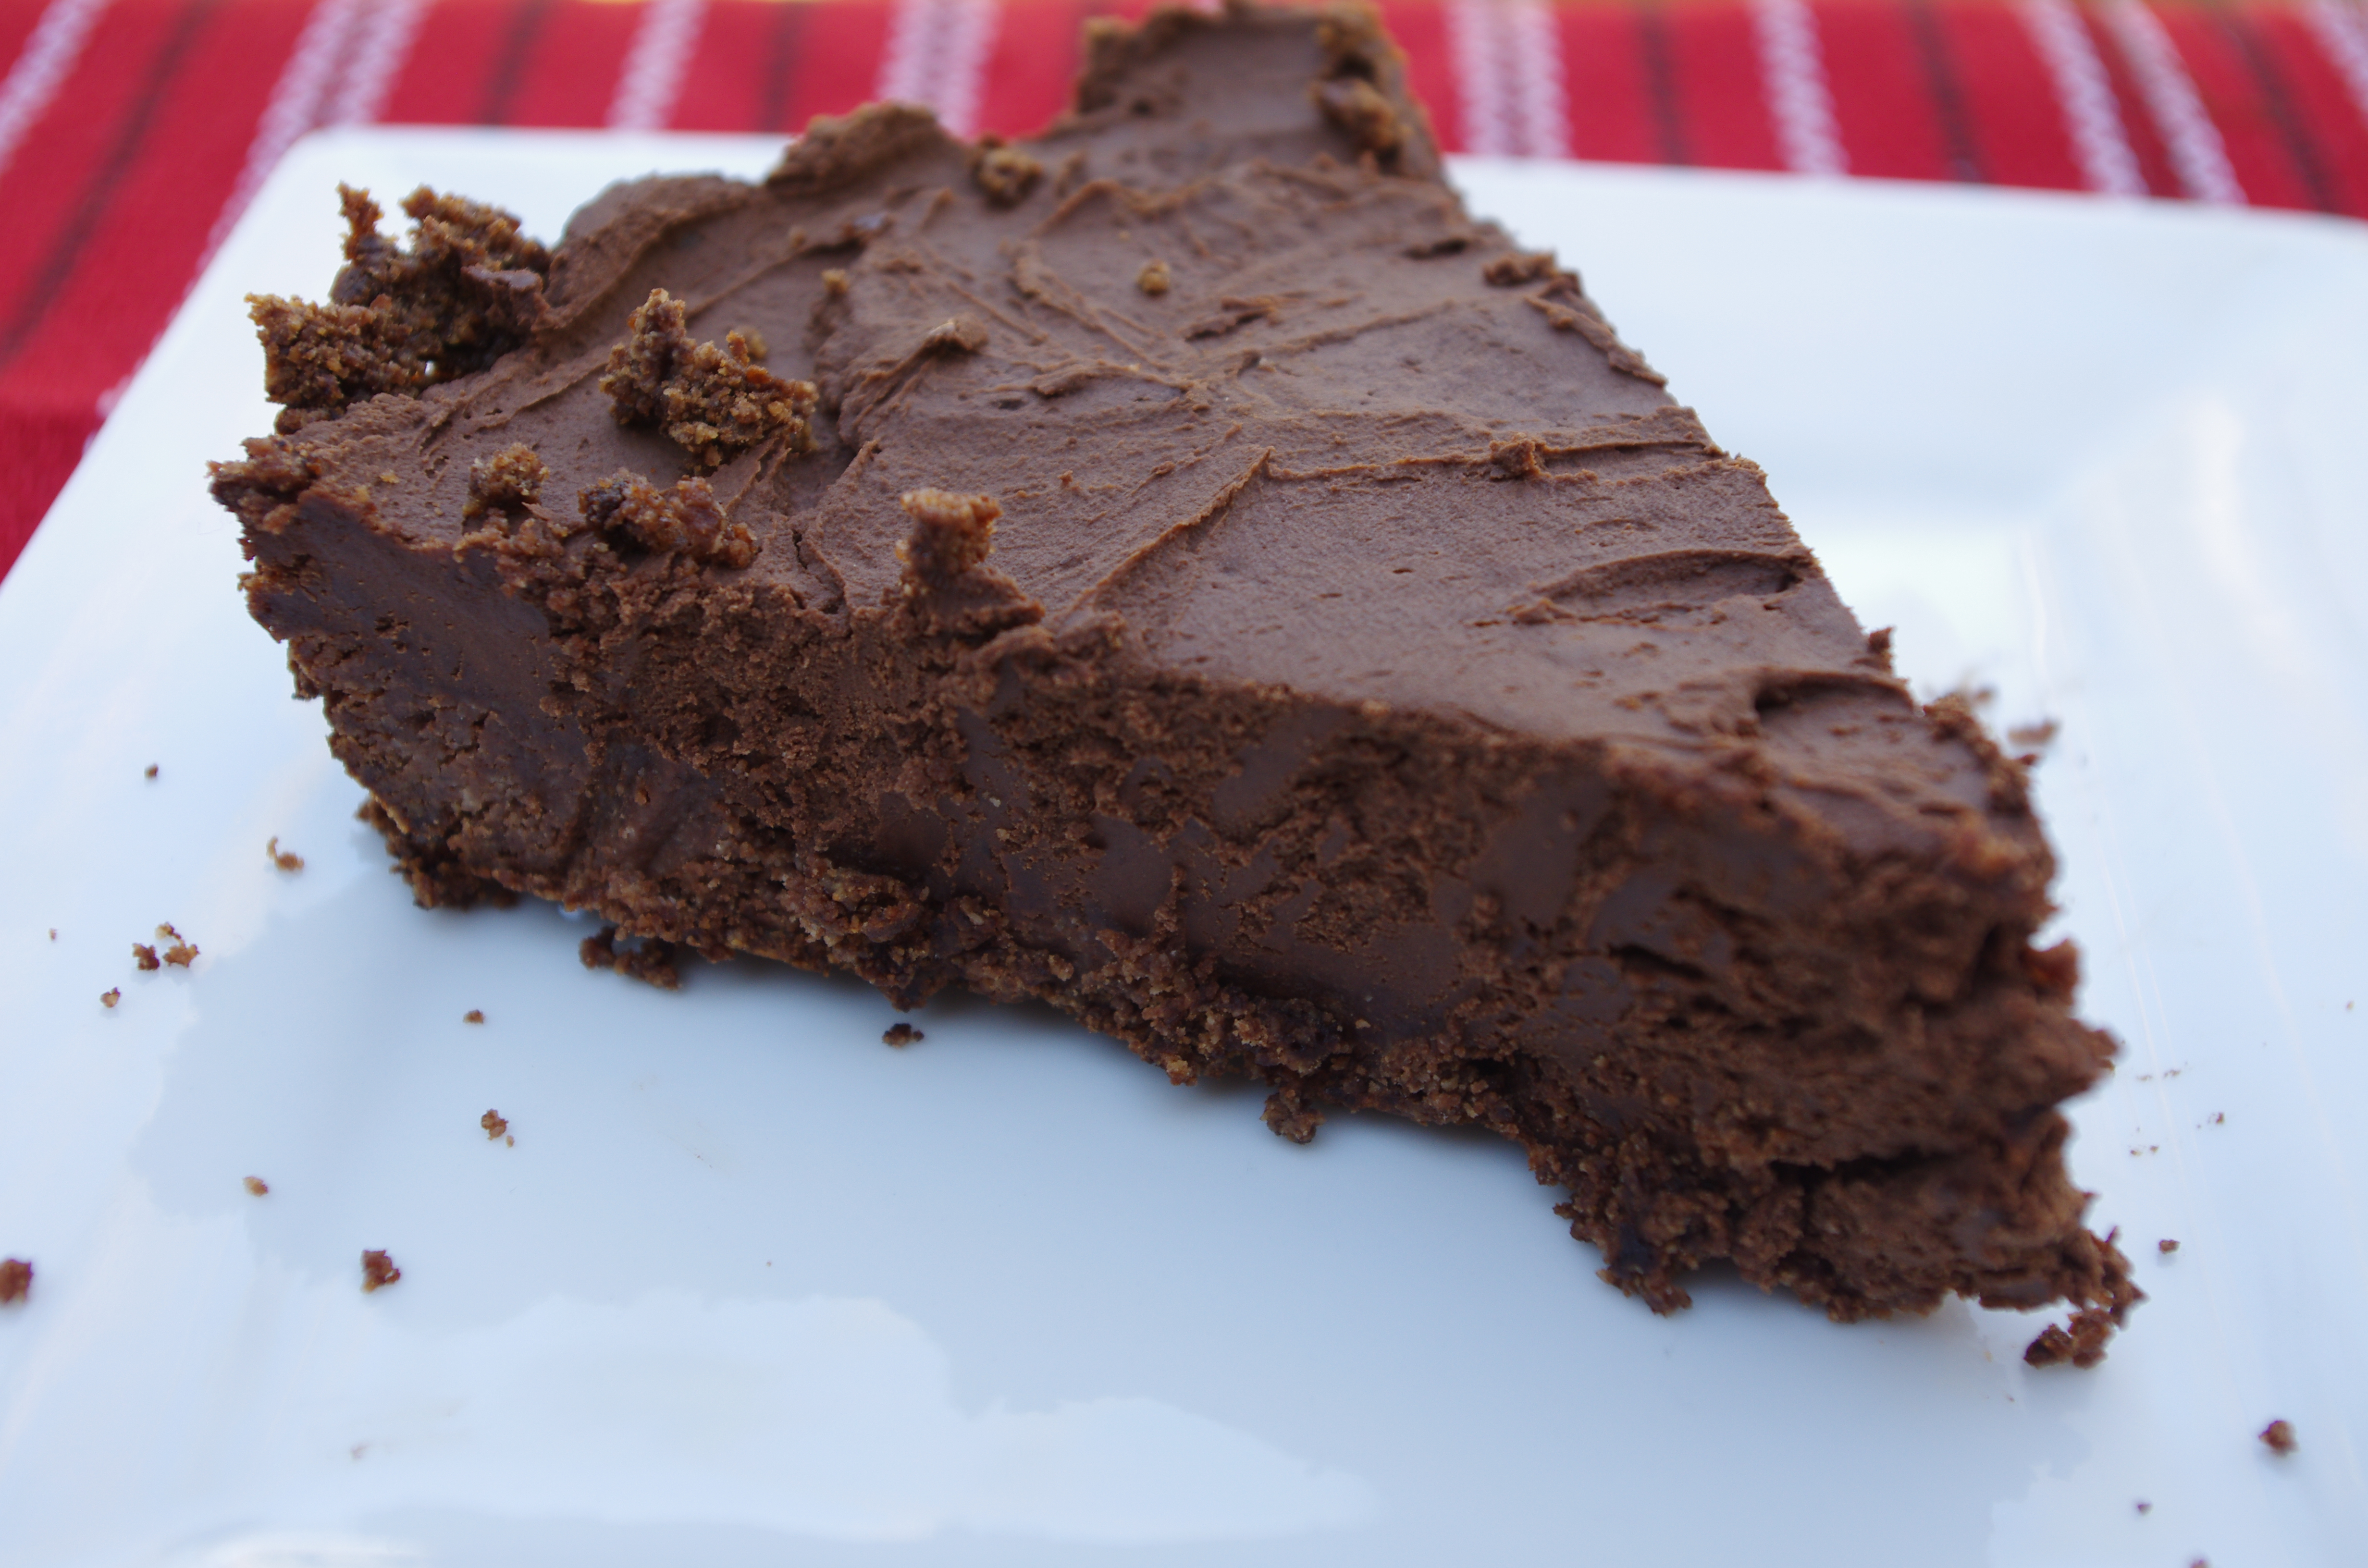 ... chocolate chiffon pie is one of the delicious pies that will grace our